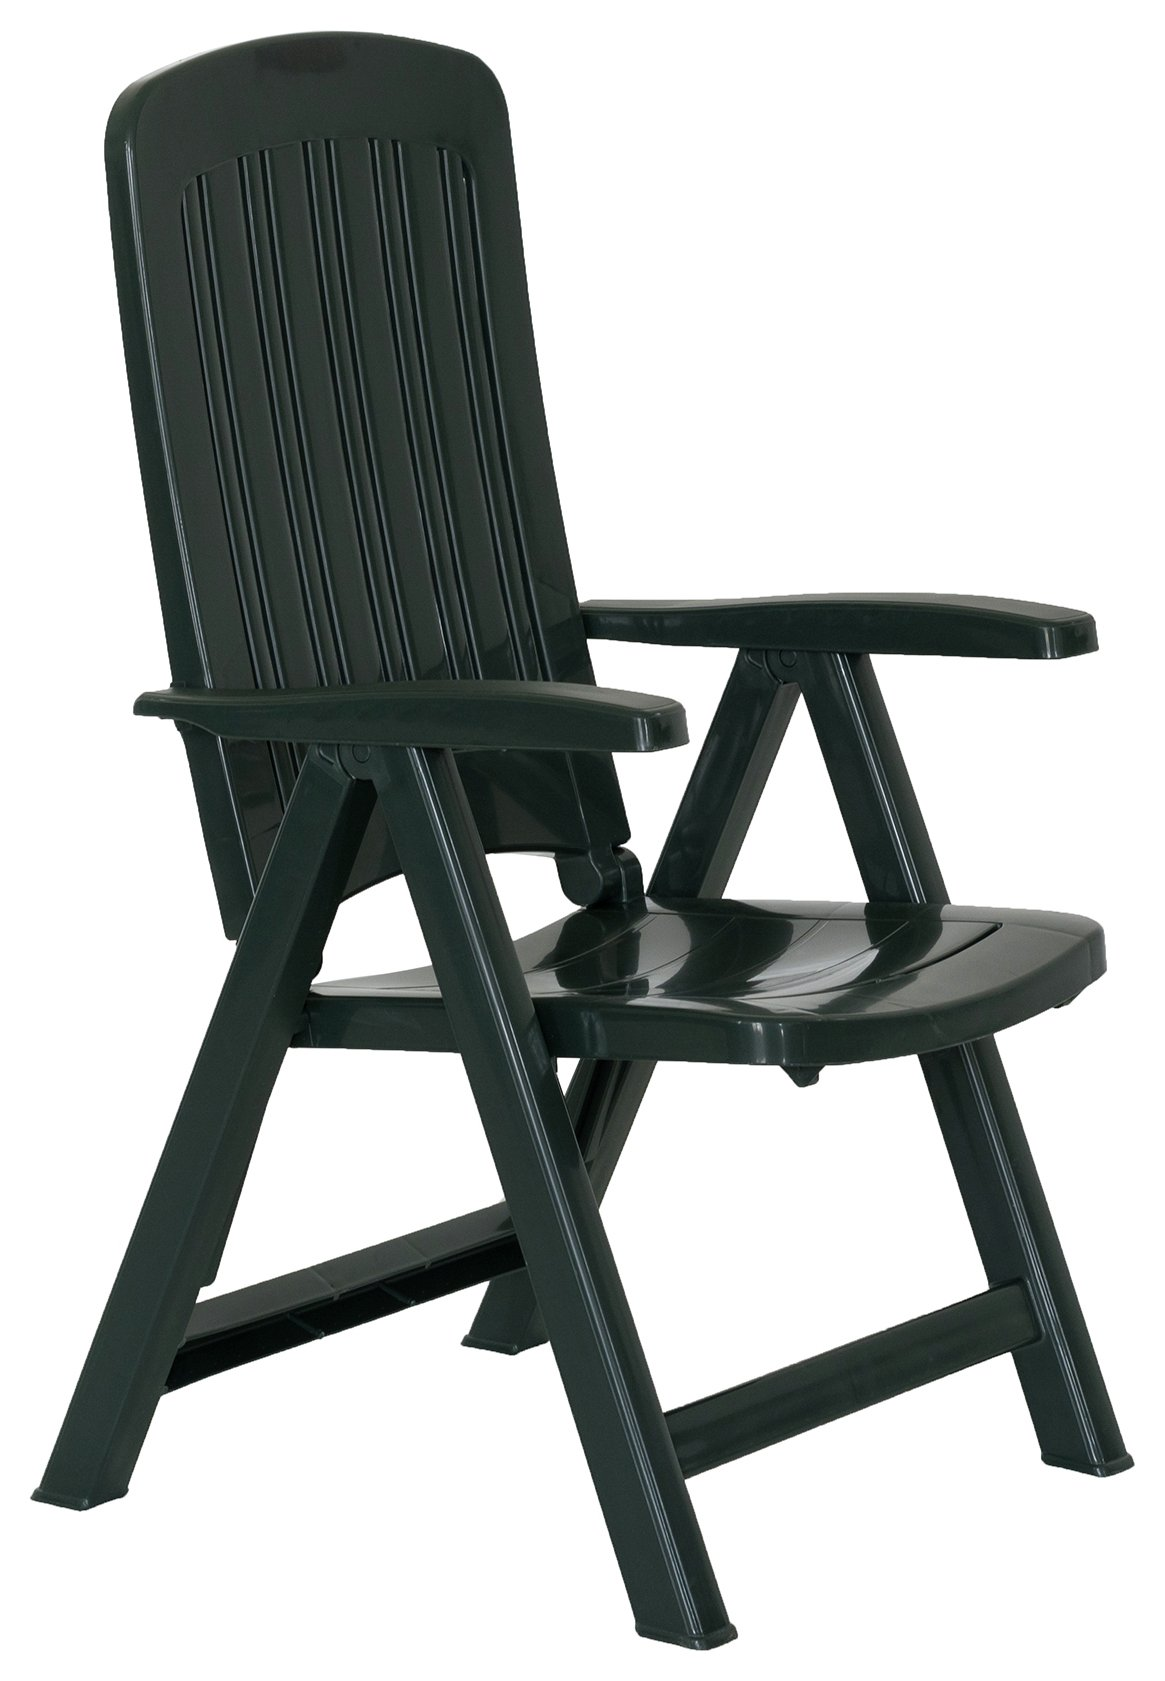 Argos Home Recliner Chair - Cayman Green